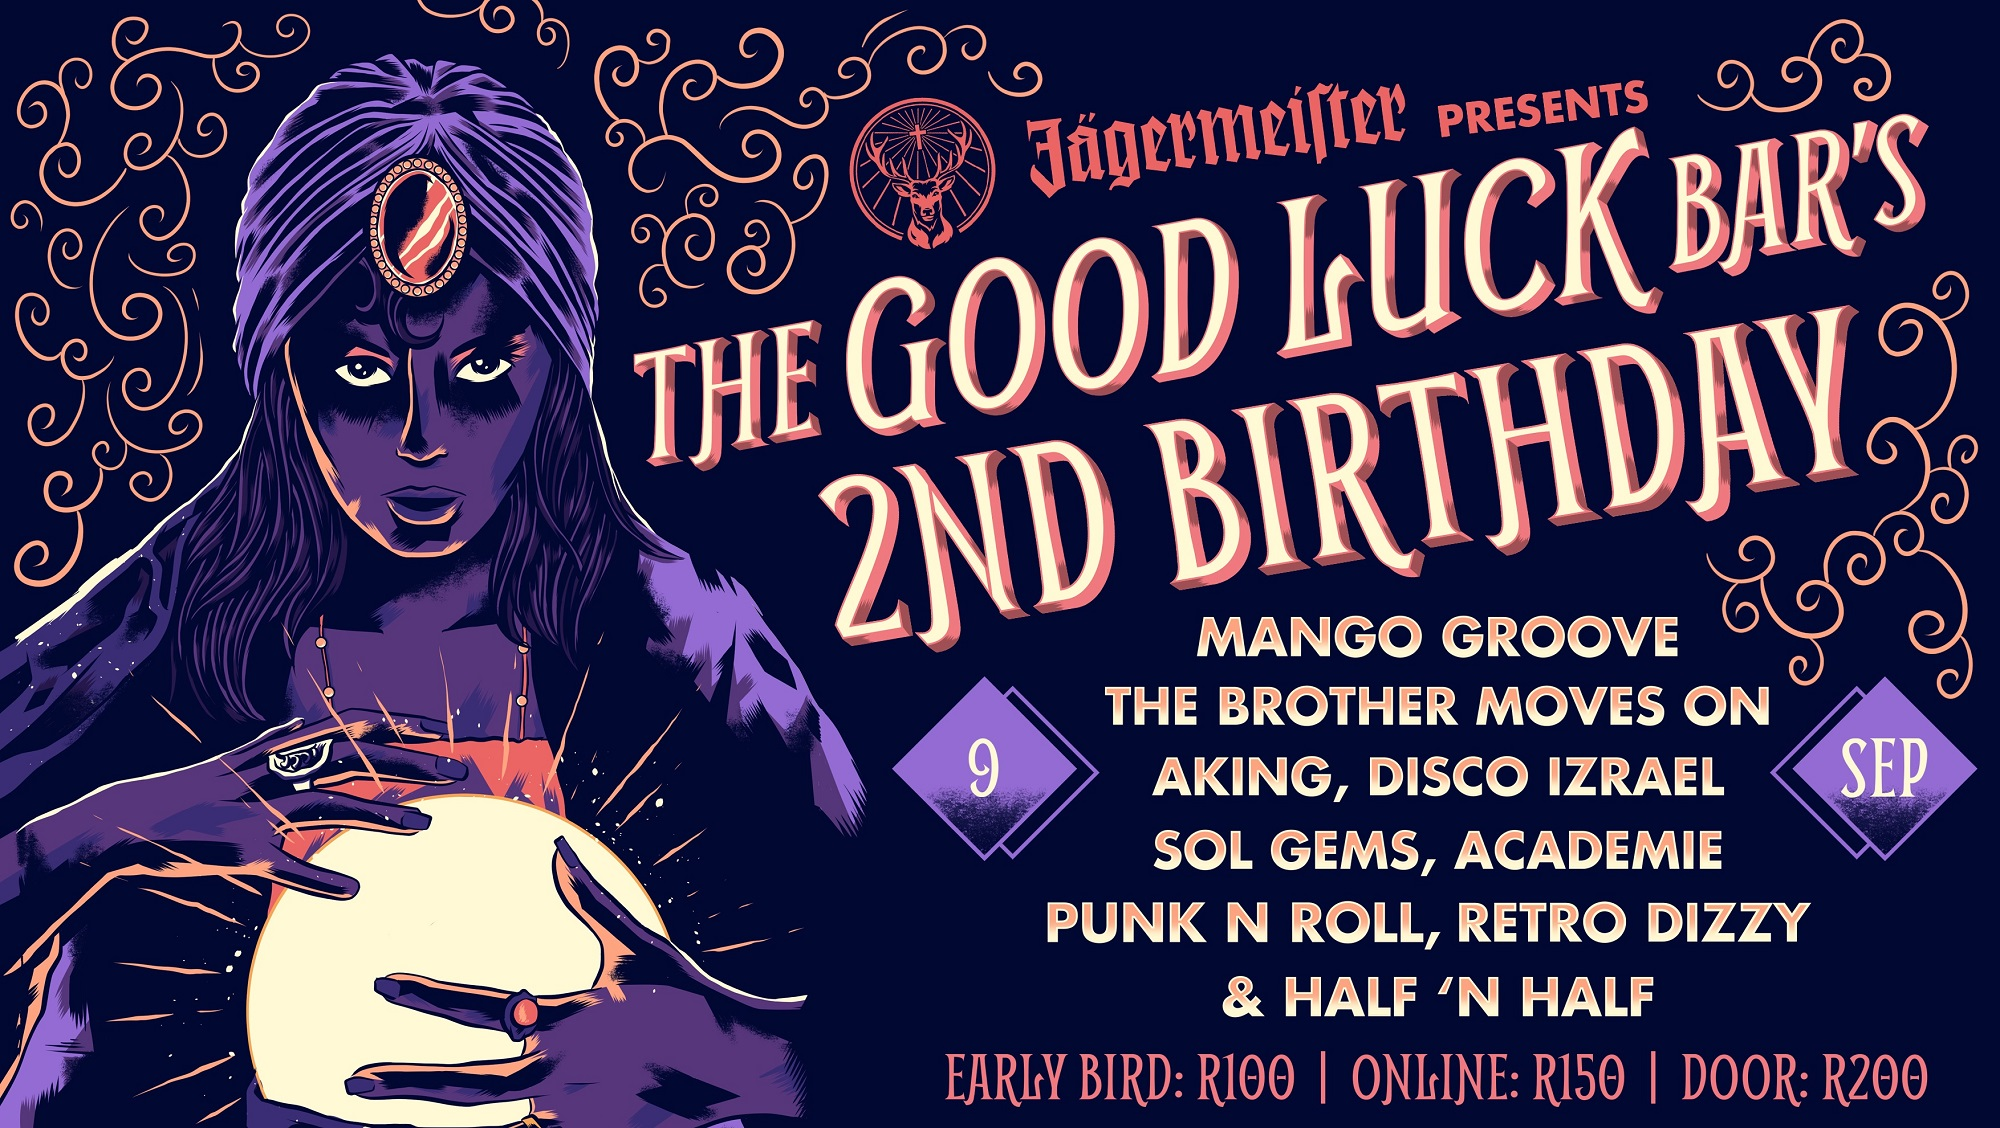 The Good Luck Bar 2nd birthday party